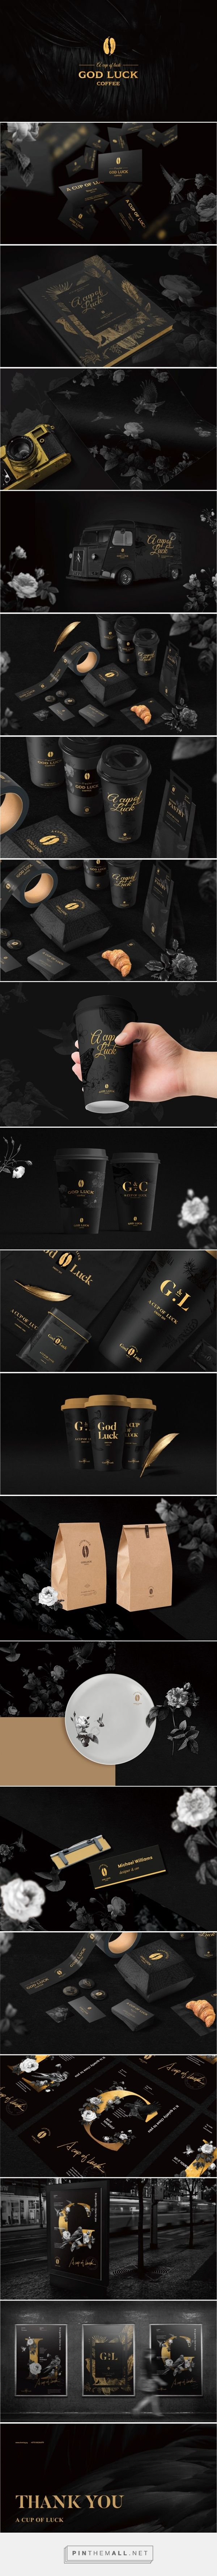 A Cup of Luck Coffee Branding and Packaging by Jem Wong | Fivestar Branding Agency – Design and Branding Agency & Curated Inspiration Gallery